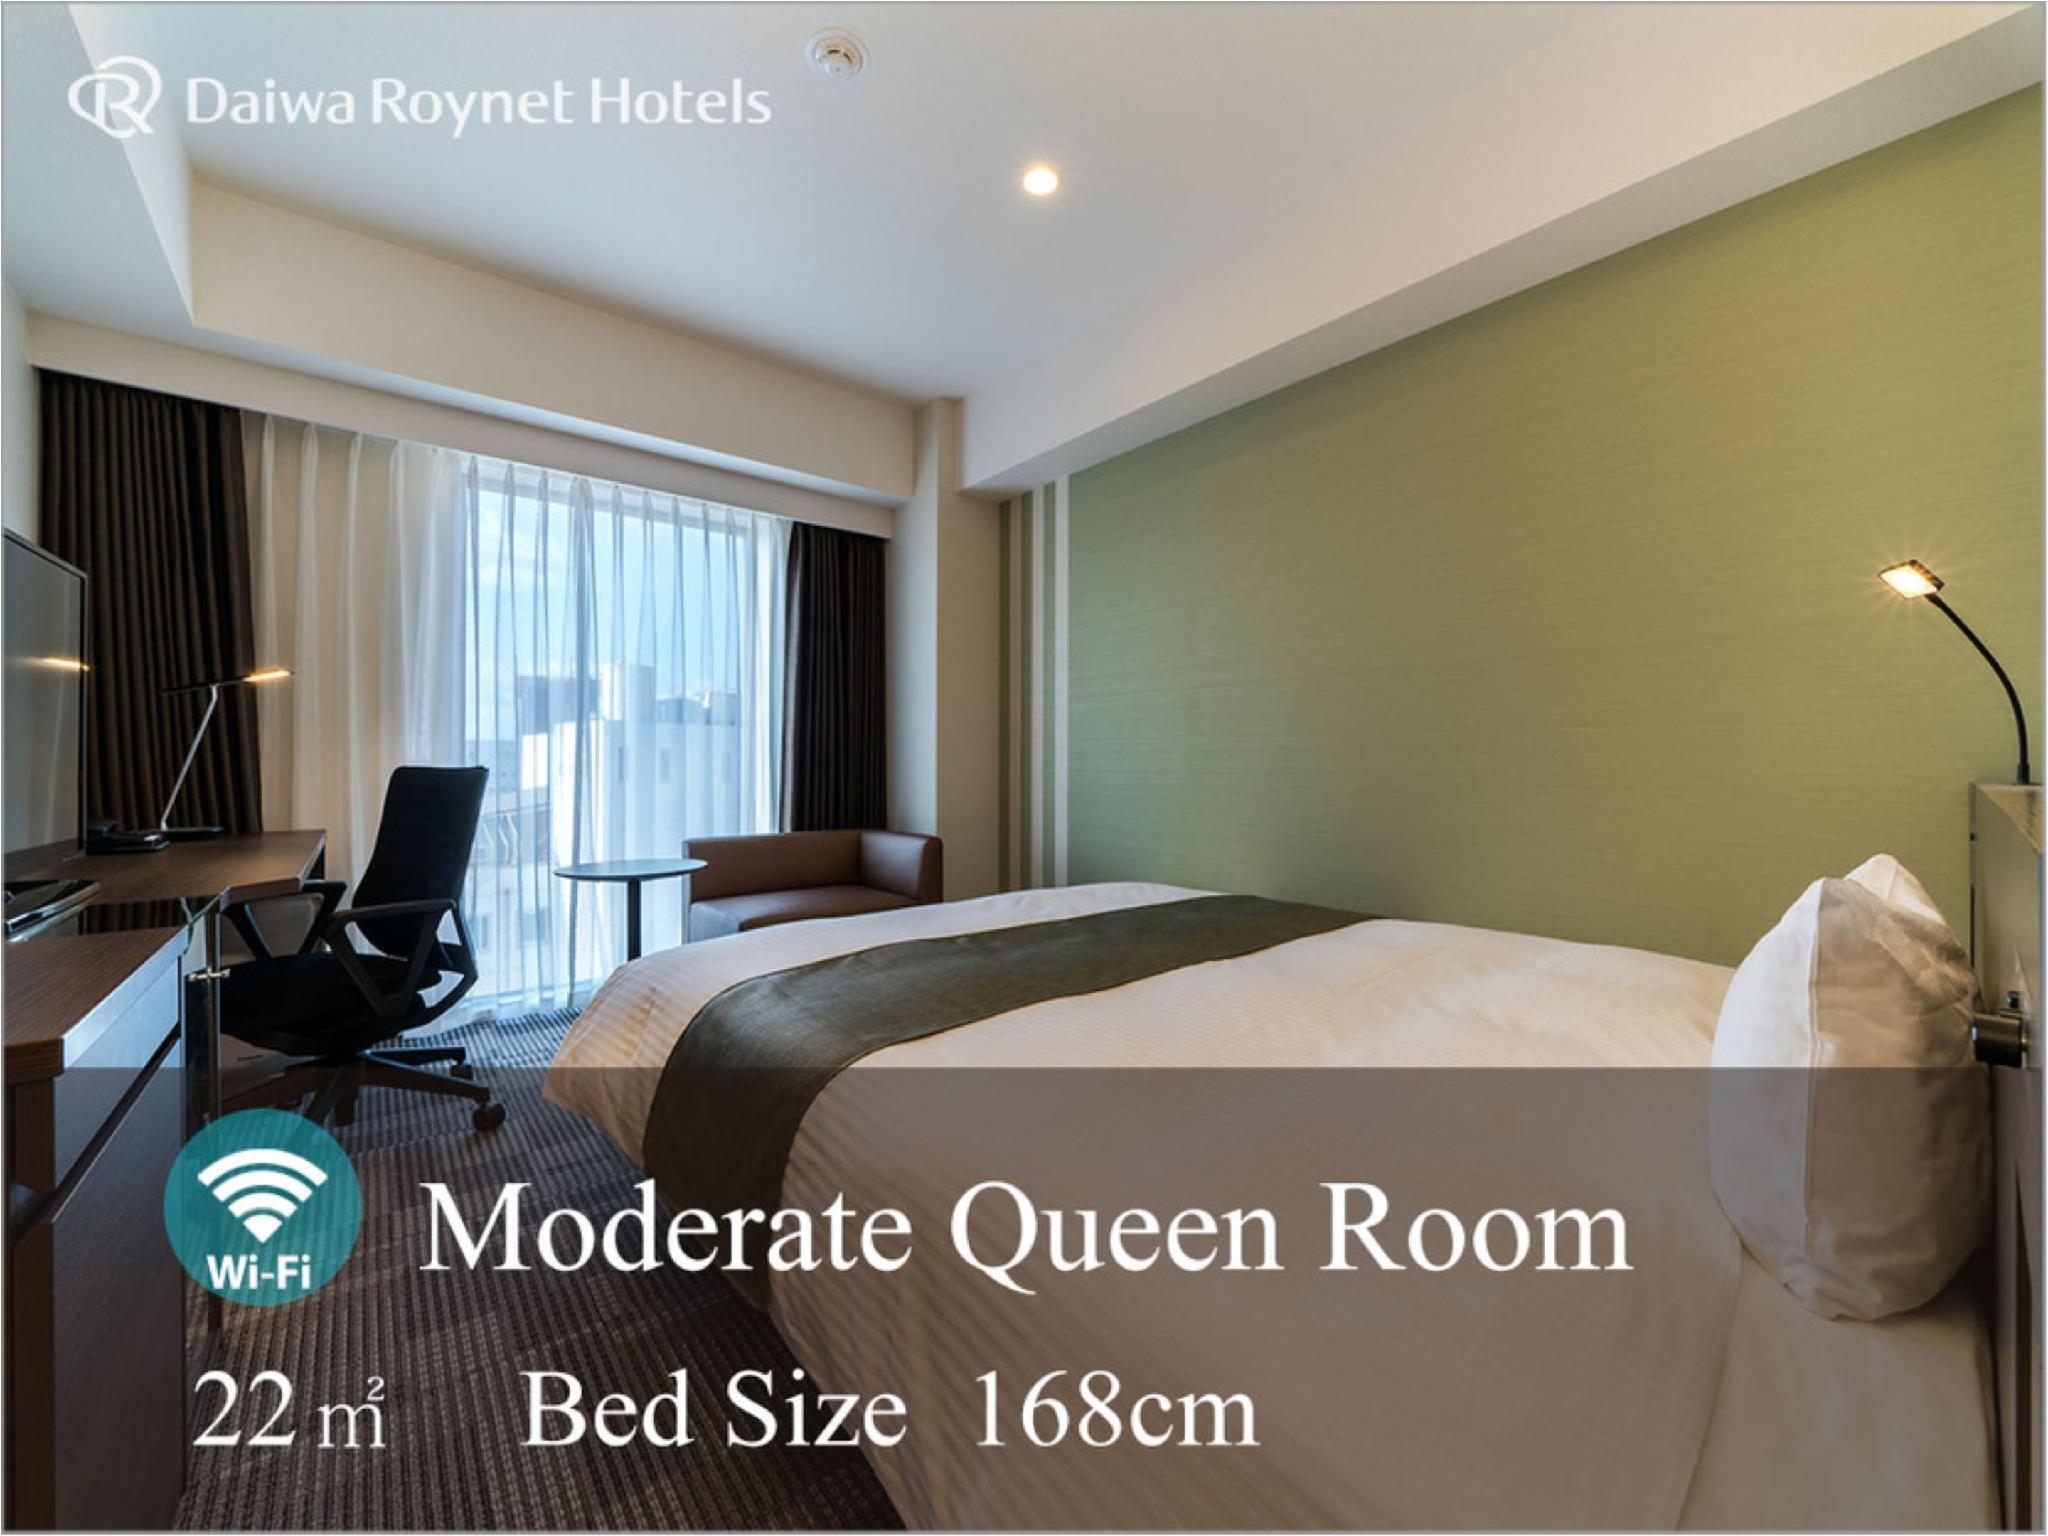 摩登Queen床雙人大床房 (Moderate Queen Room)